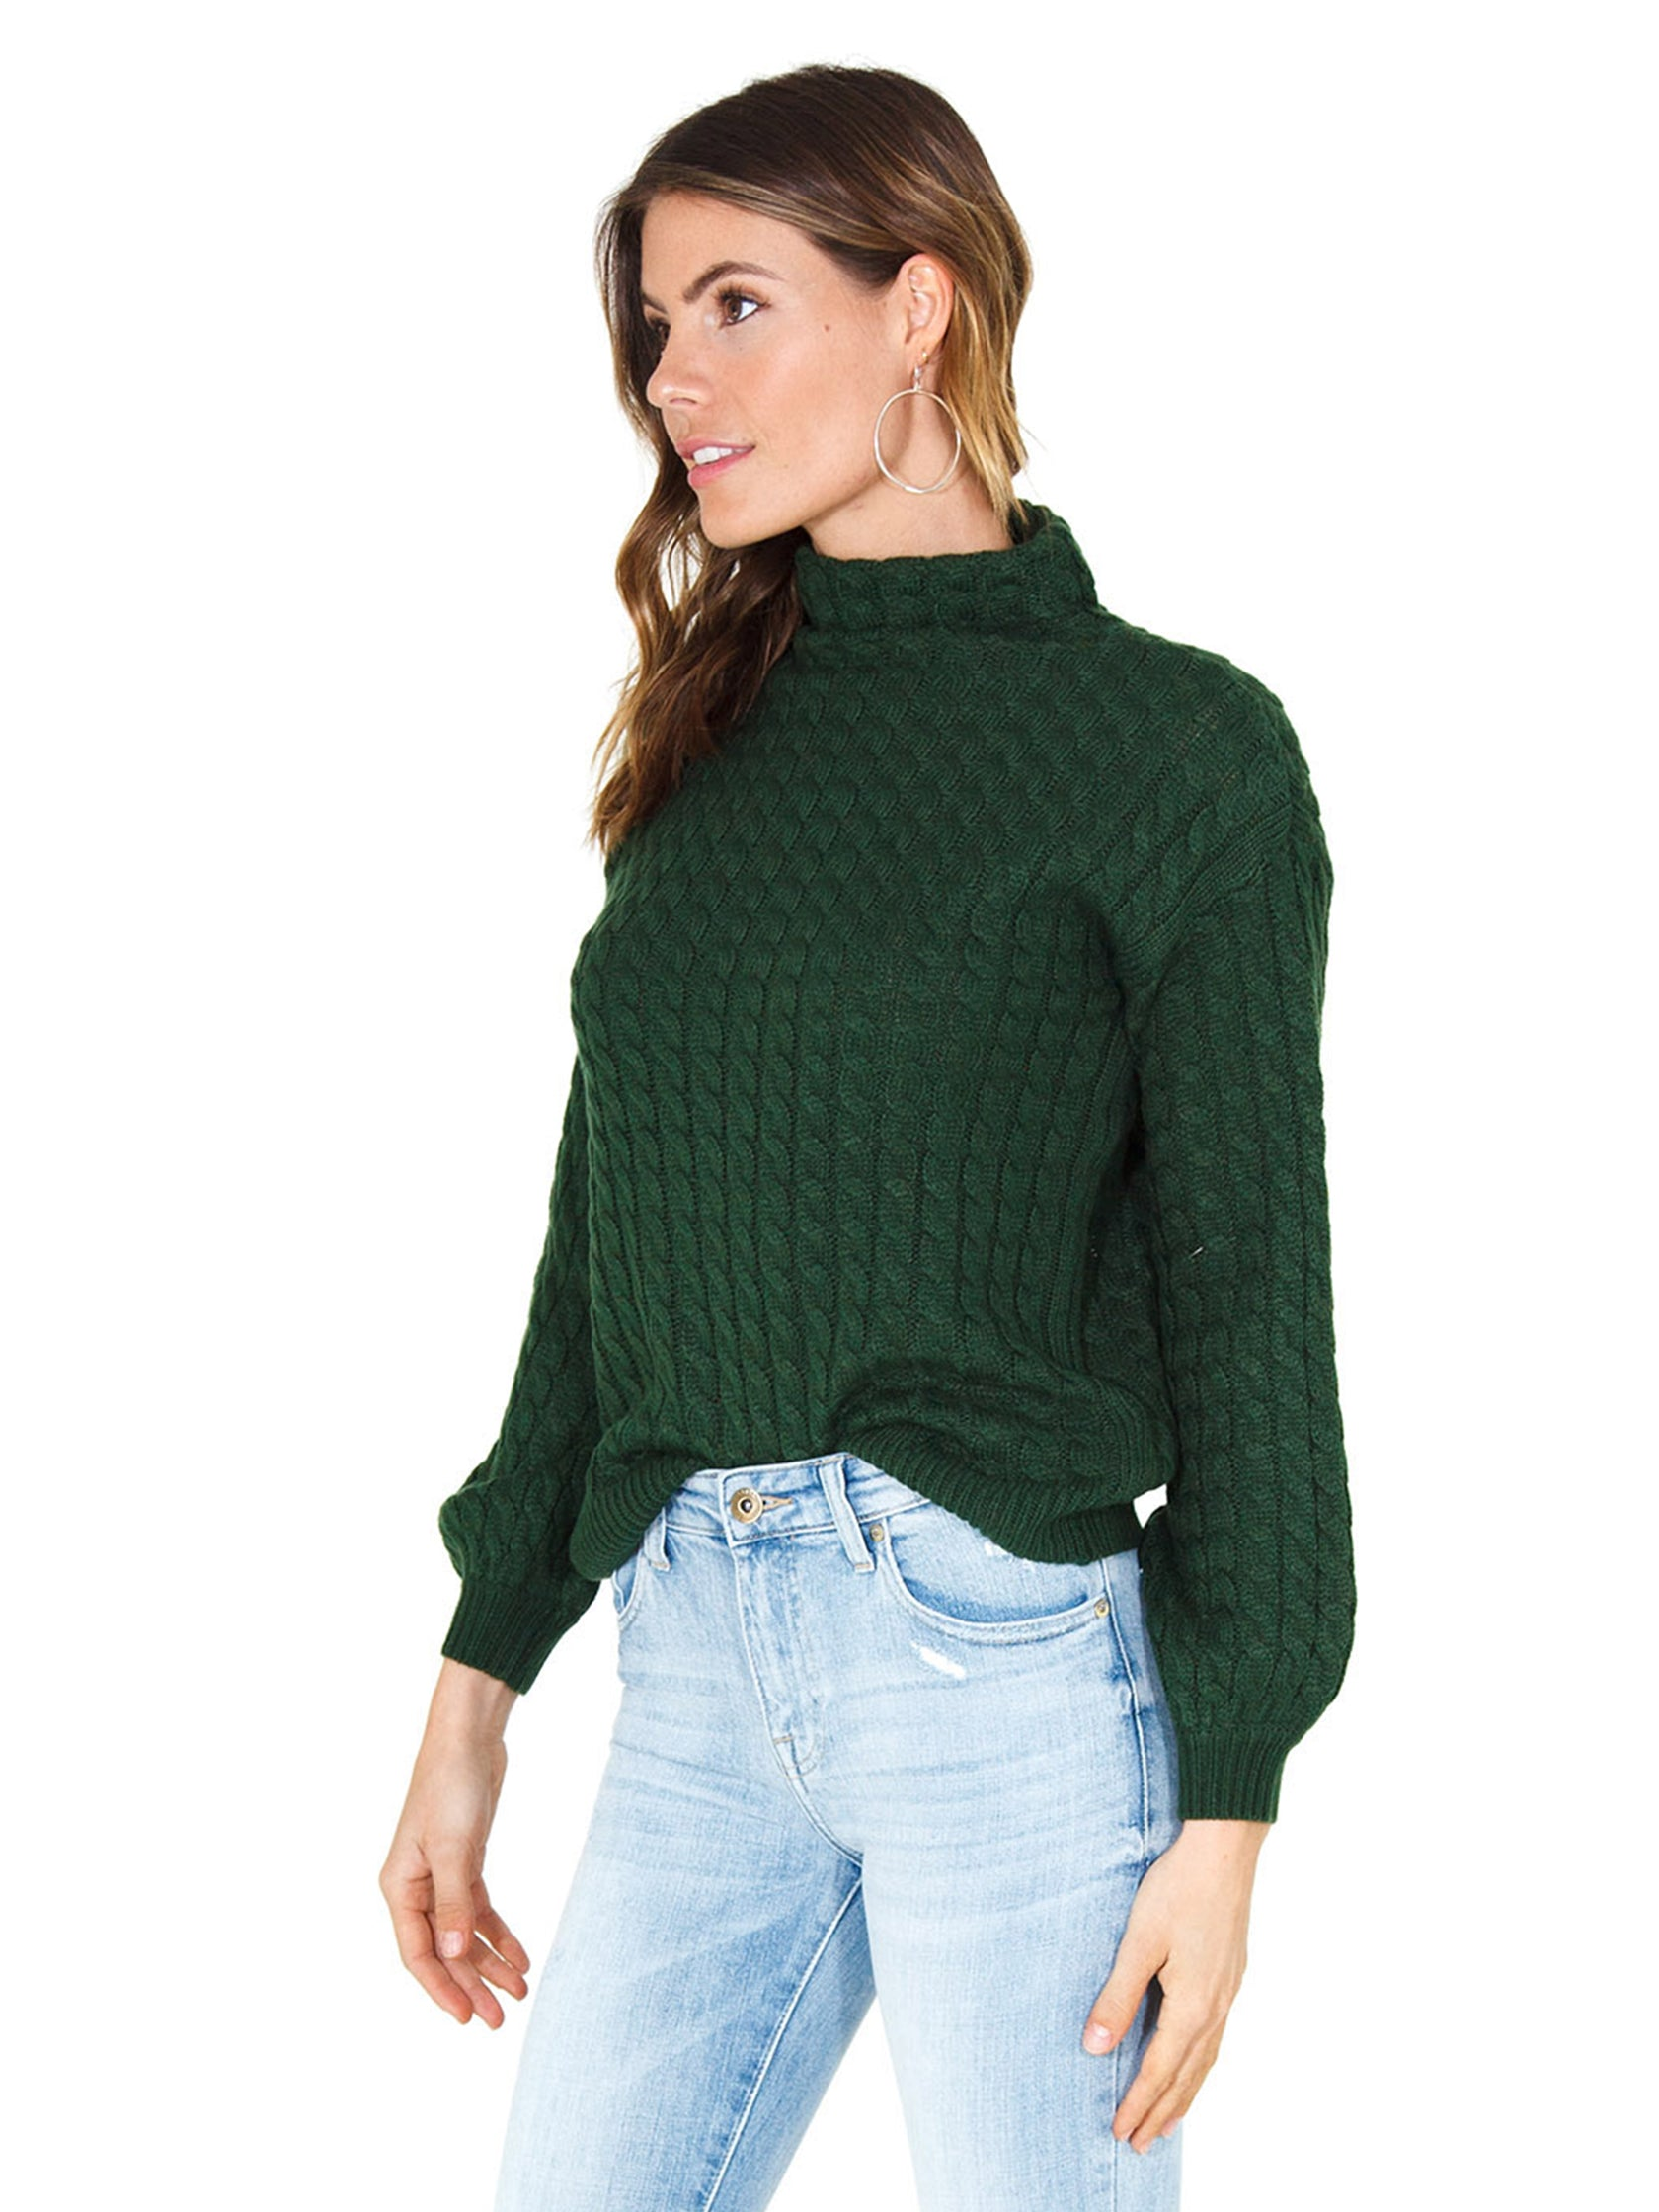 Women wearing a sweater rental from Line & Dot called Juniper Cable Knit Sweater